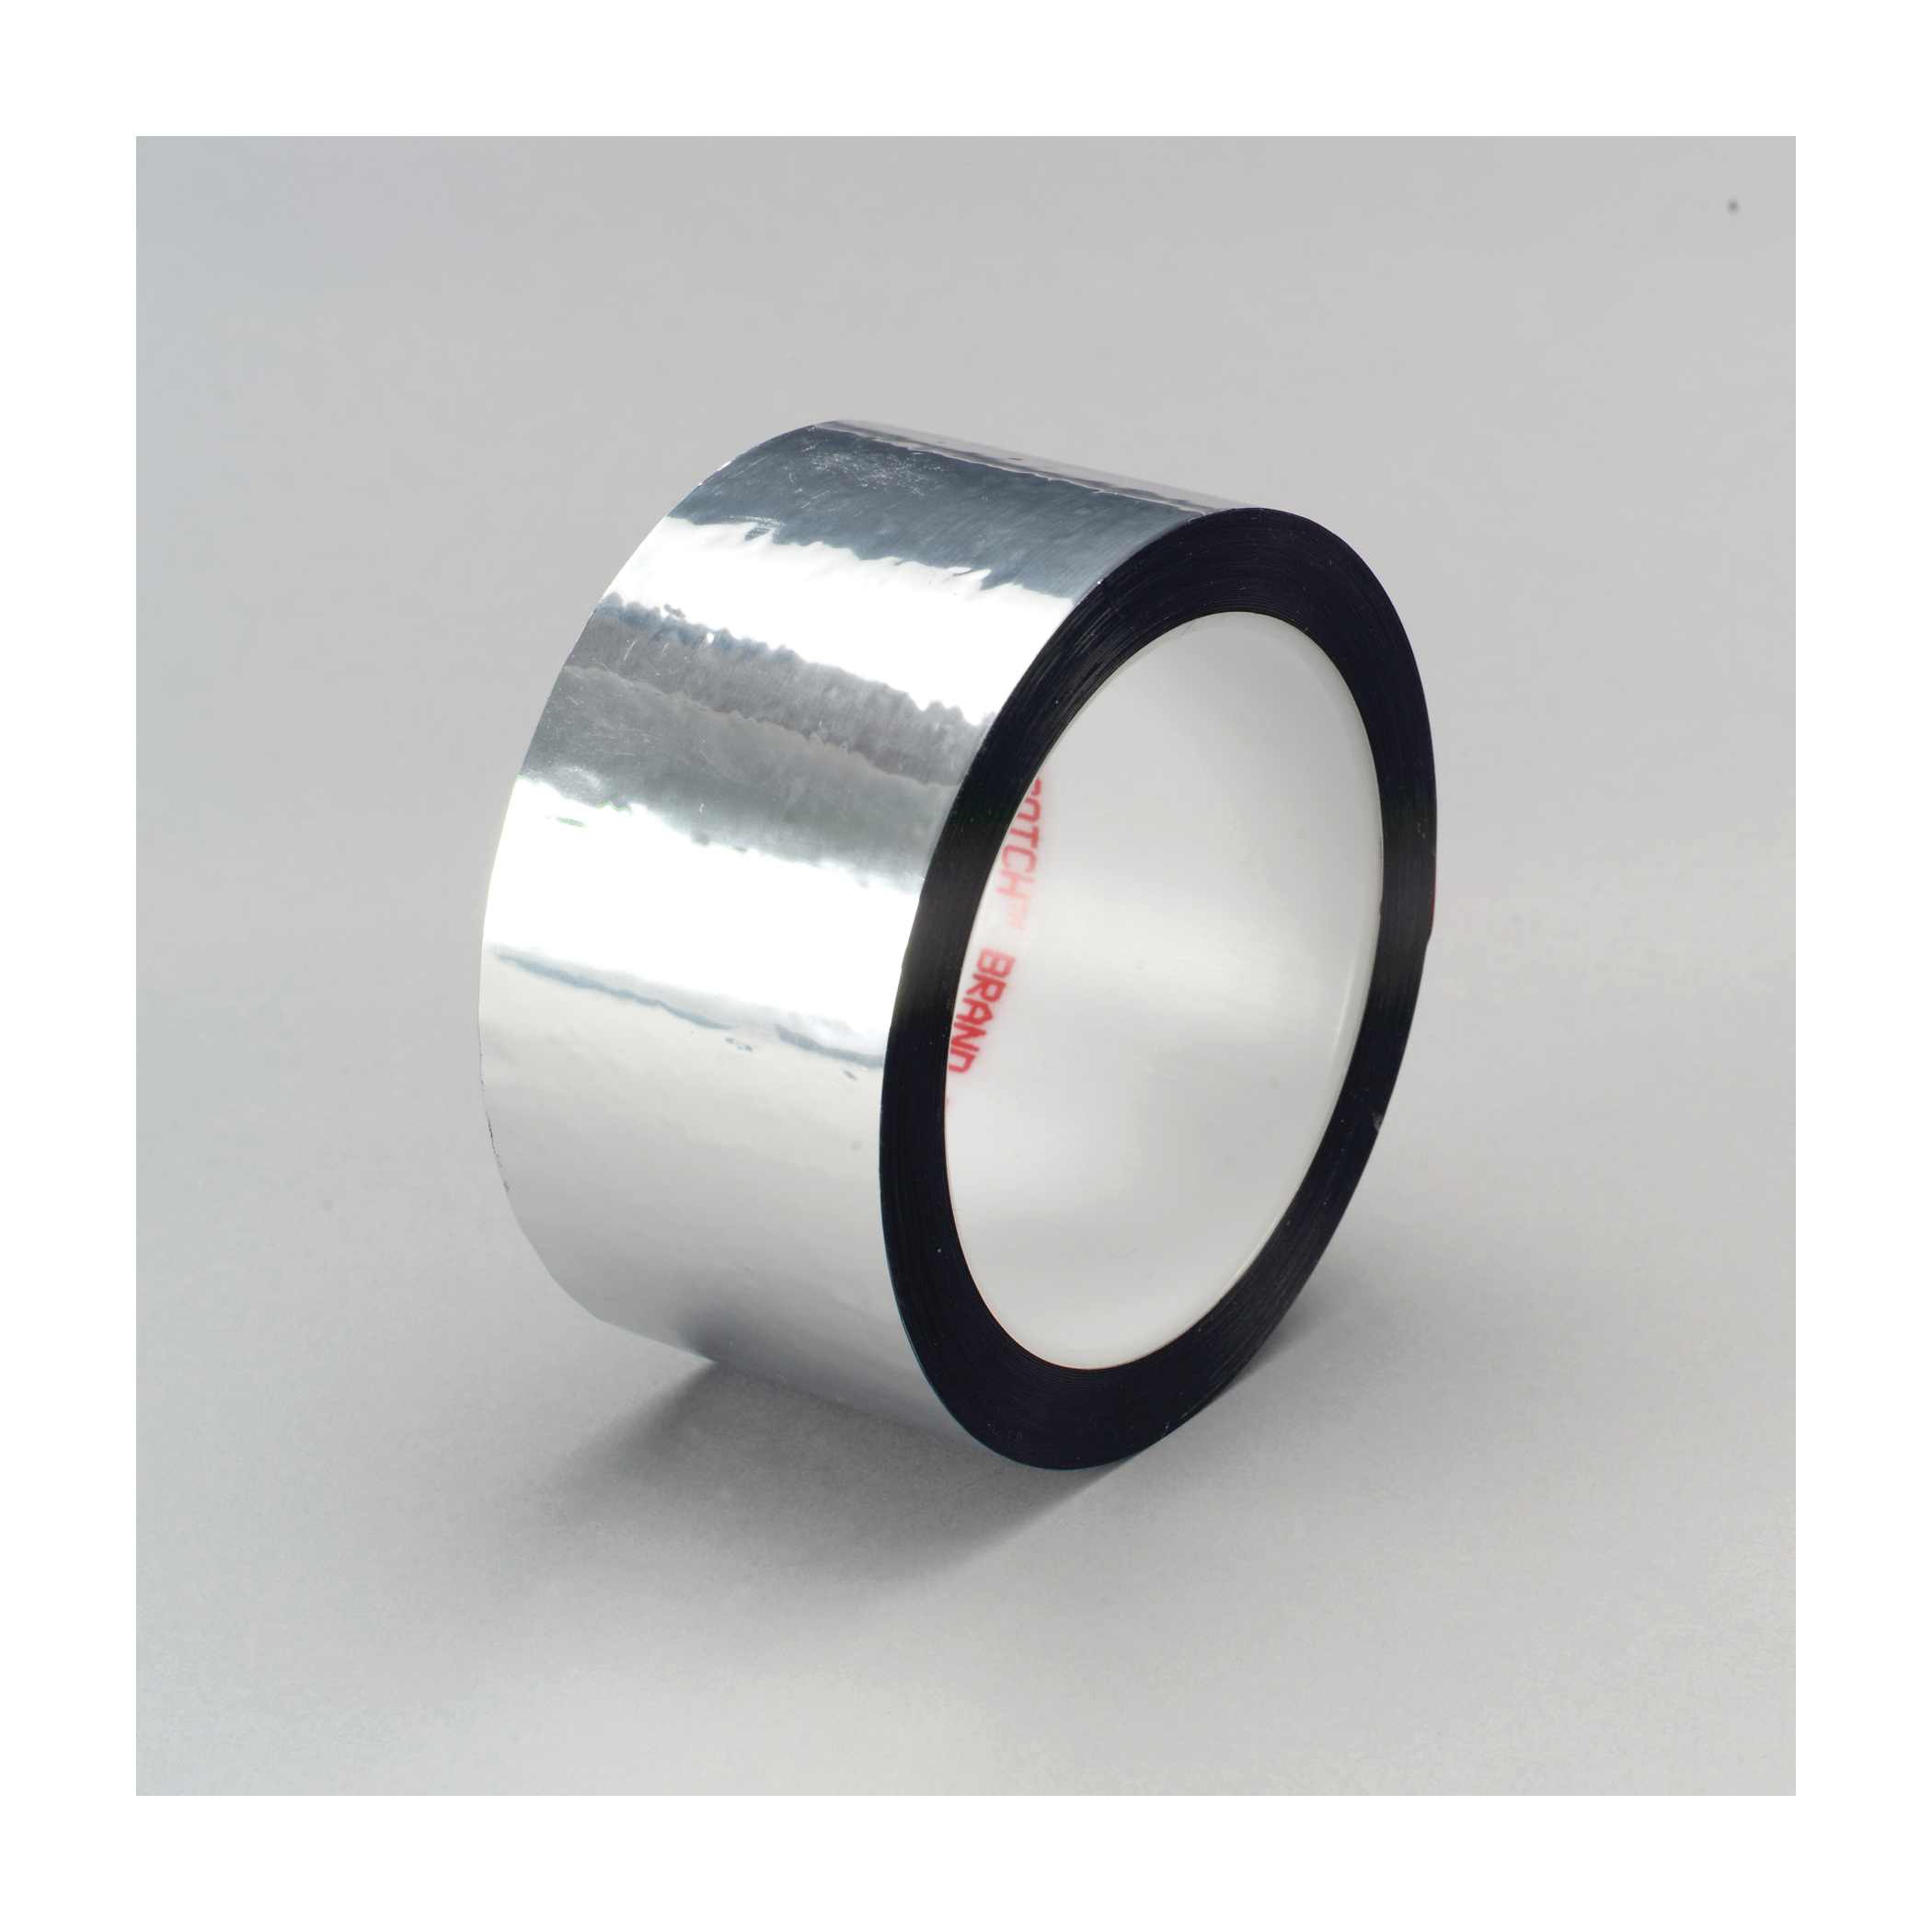 3M™ 021200-03577 Film Tape, 72 yd L x 1/2 in W, 1.9 mil THK, Acrylic Adhesive, 0.9 mil Polyester Backing, Silver